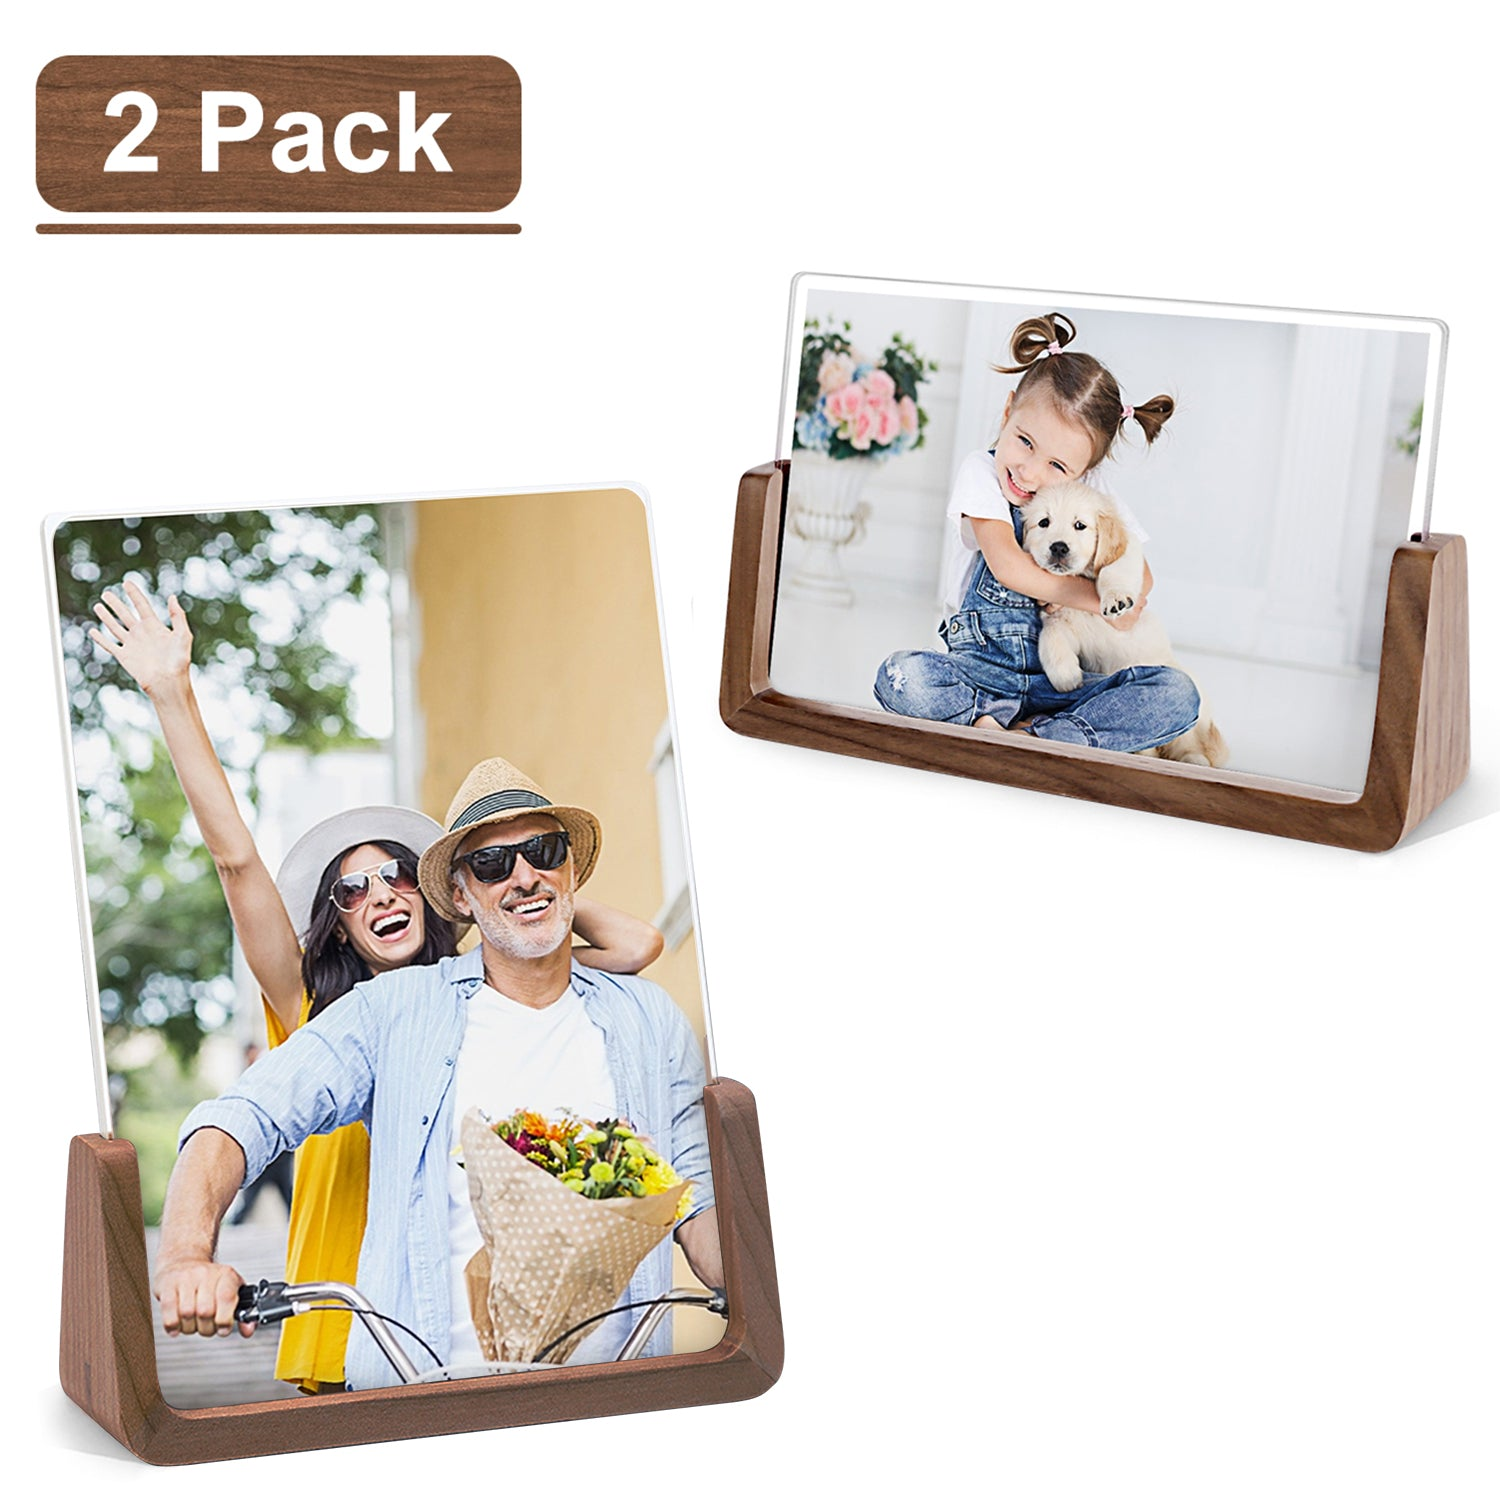 MEKO Picture Frame 5x7 Inch Wood Rustic Photo Frame - 2 Pack (Horizontal + Vertical)